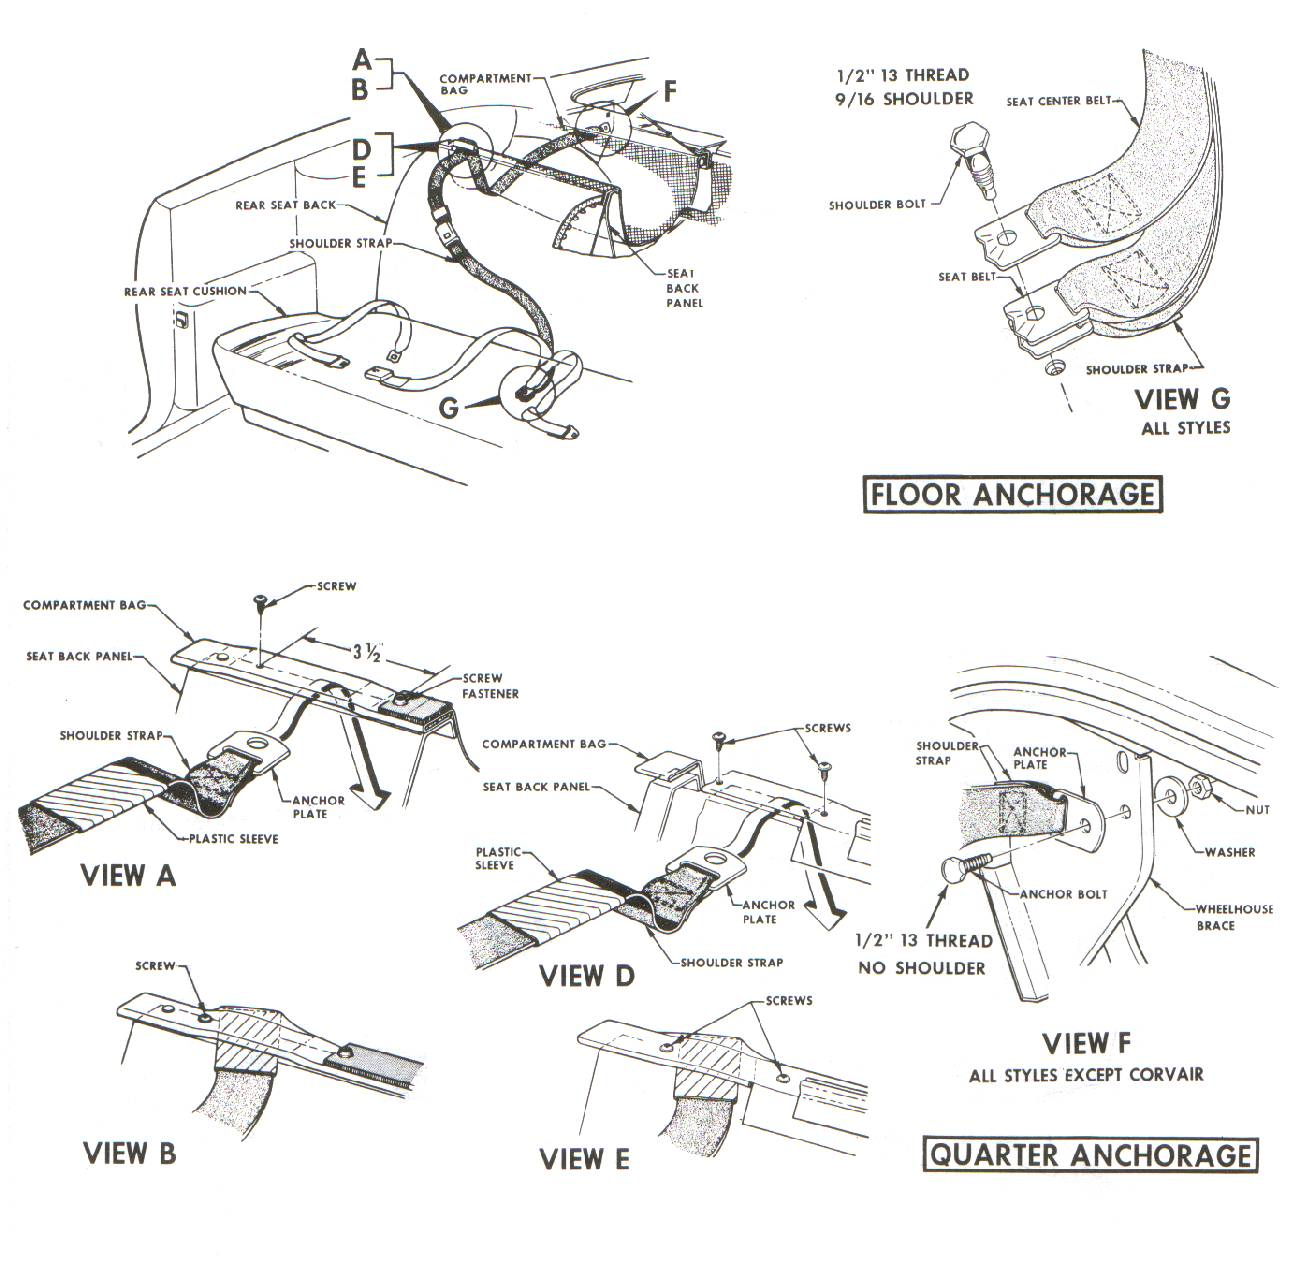 1968 Chevy Seat Belt Diagram Wiring Schematic Experts Of 1958 For Corvette Get Free Image About 1969 Apache